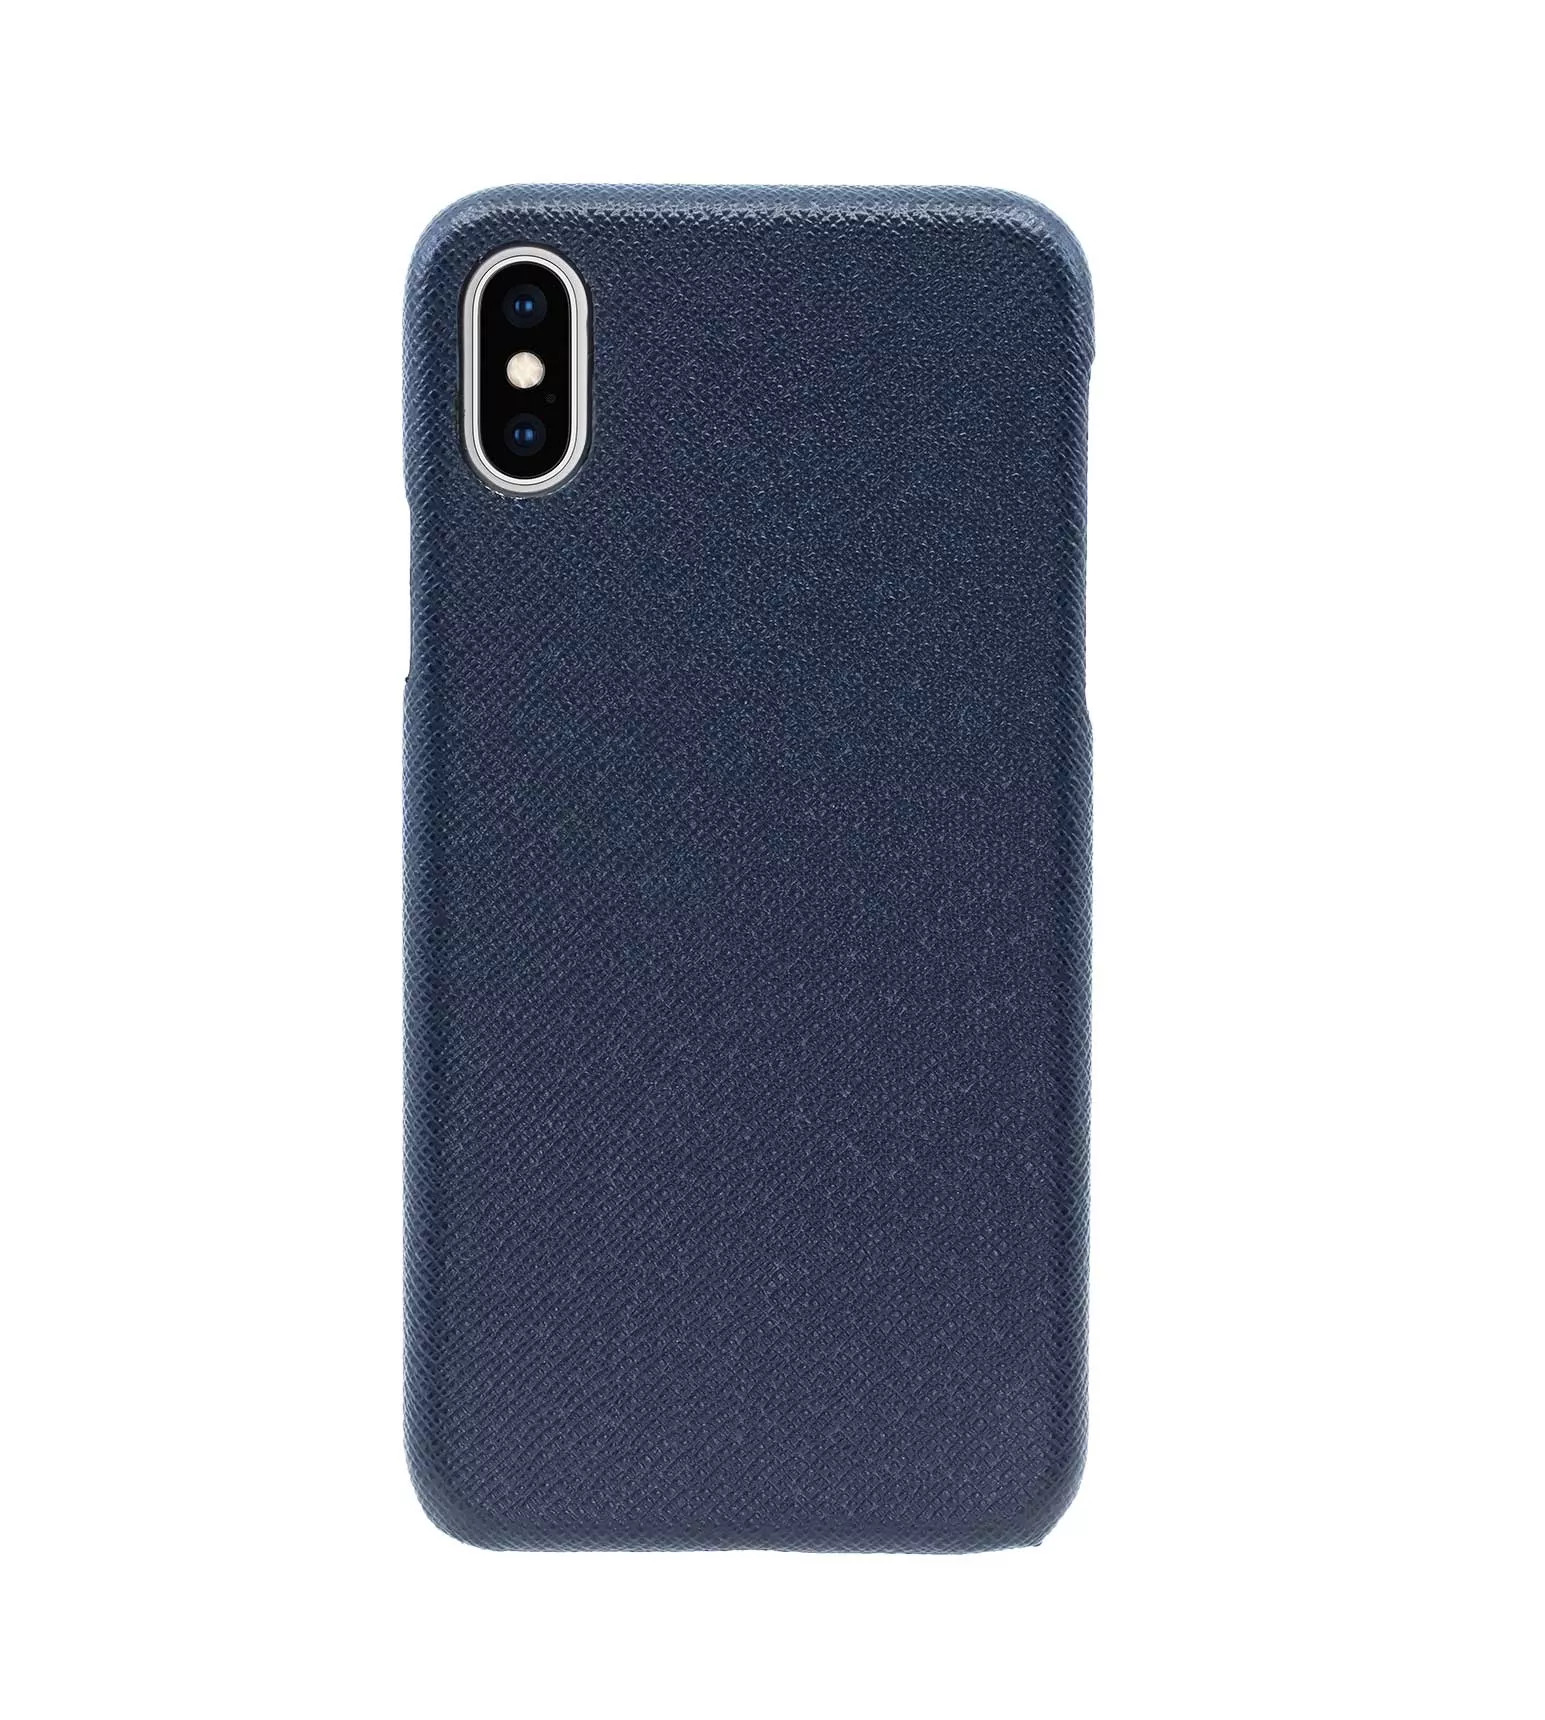 Купить Чехол Natural Cow Tiffany Leather Case для iPhone X/XS - Темно-синий (Dark Blue) в Сочи